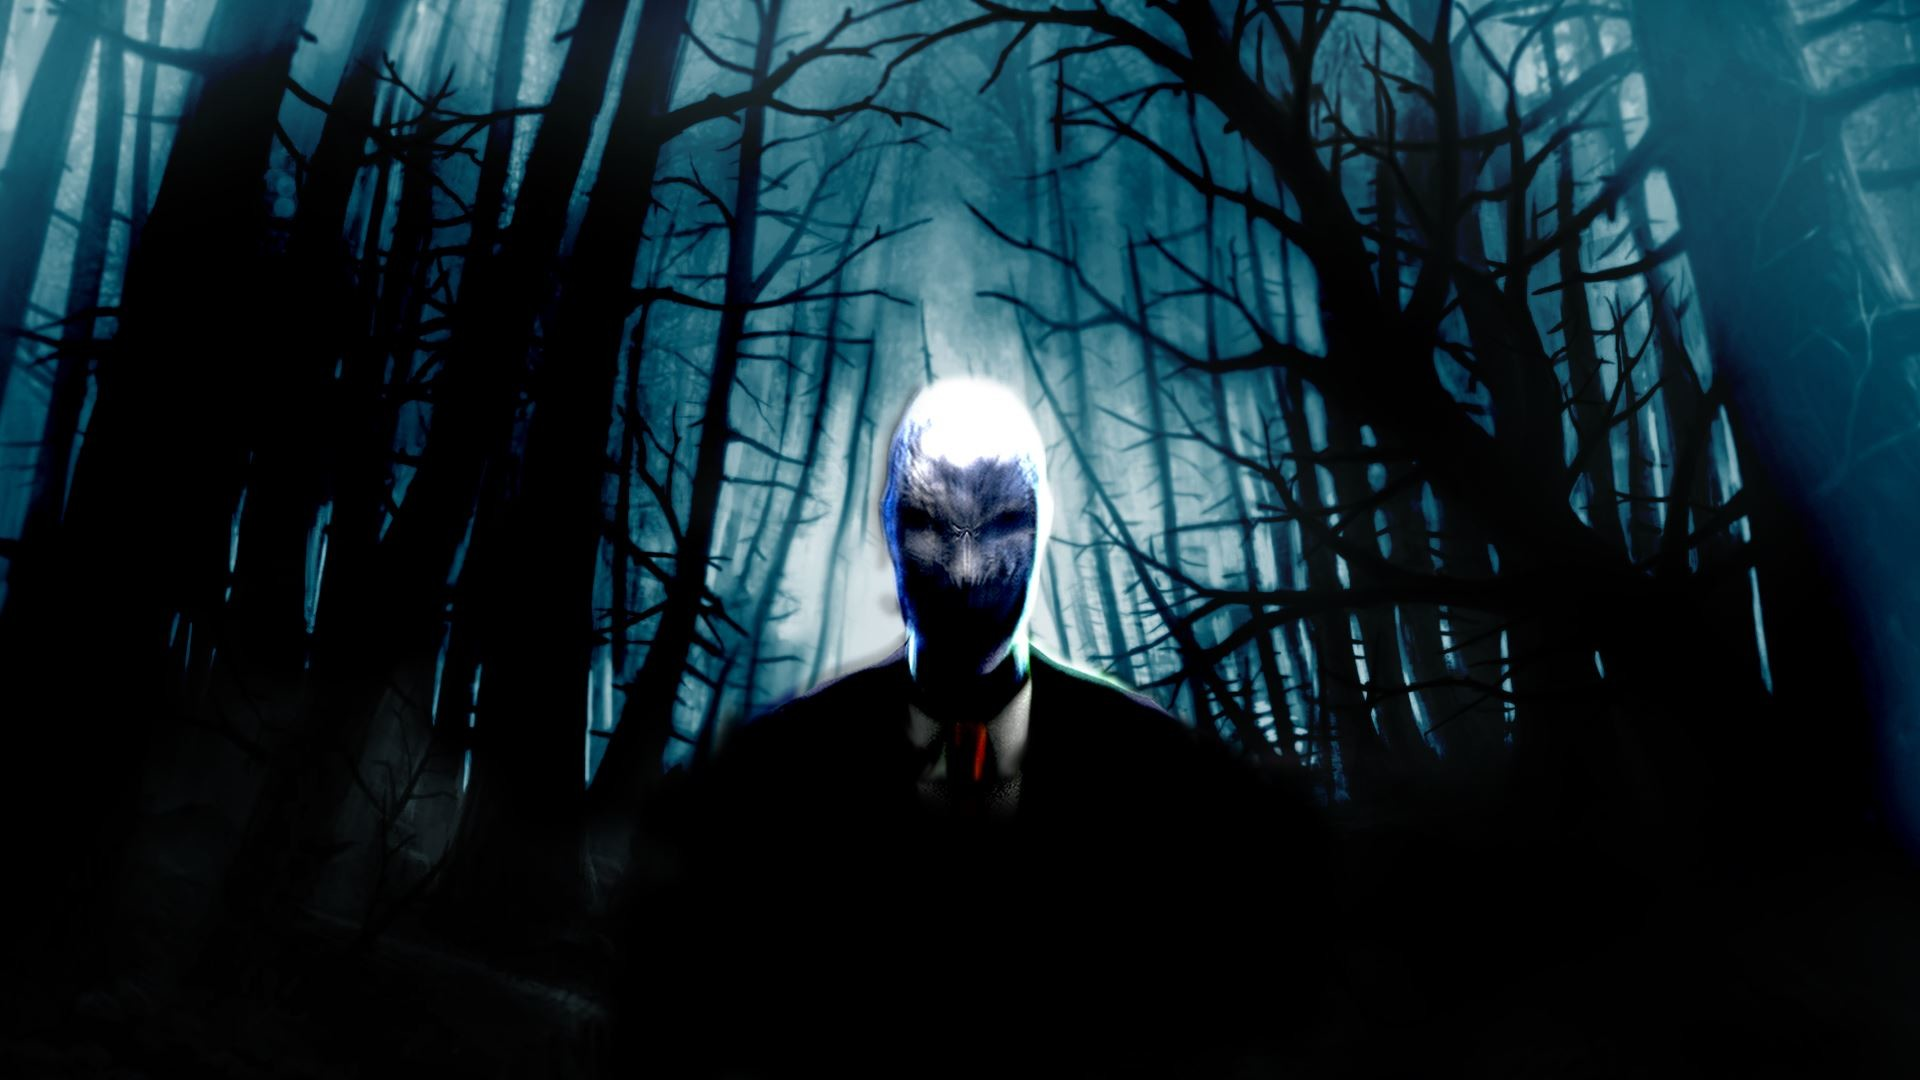 1920x1080 Best 25+ Slender the arrival ideas on Pinterest | Creepy pasta, Creepypasta  games and Creepy pasta family